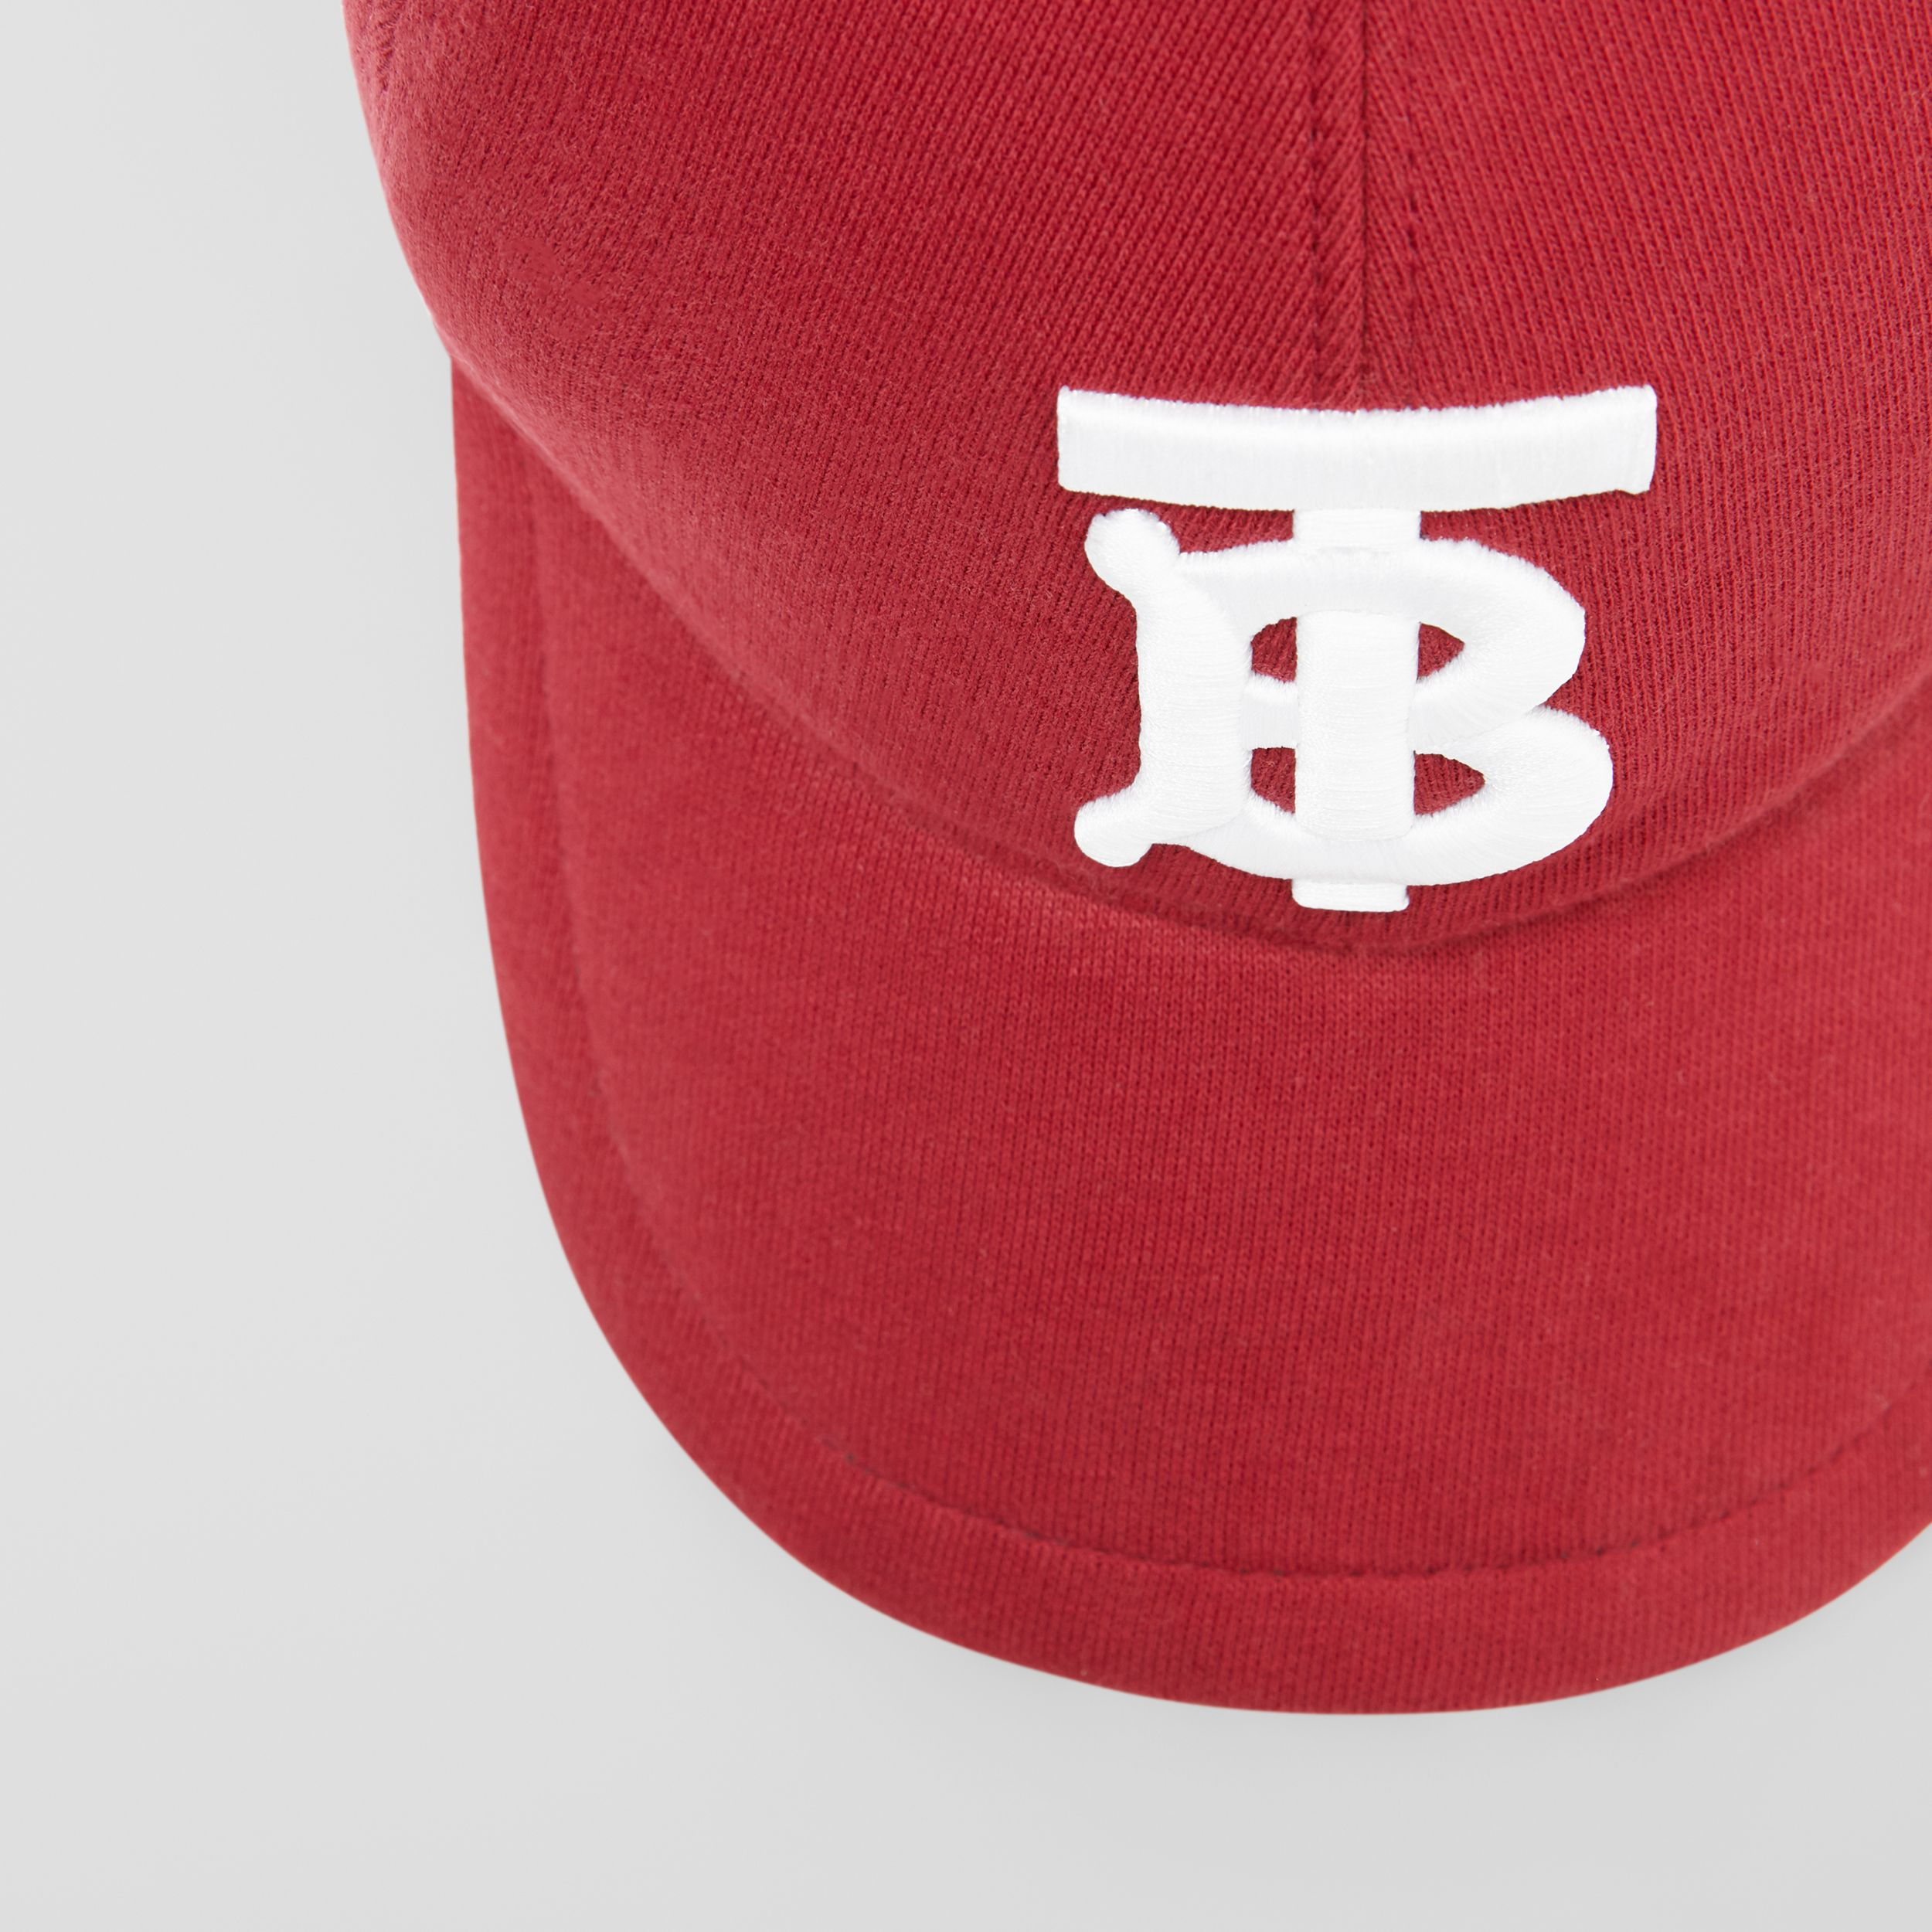 Monogram Motif Jersey Baseball Cap in Dark Carmine | Burberry Singapore - 2